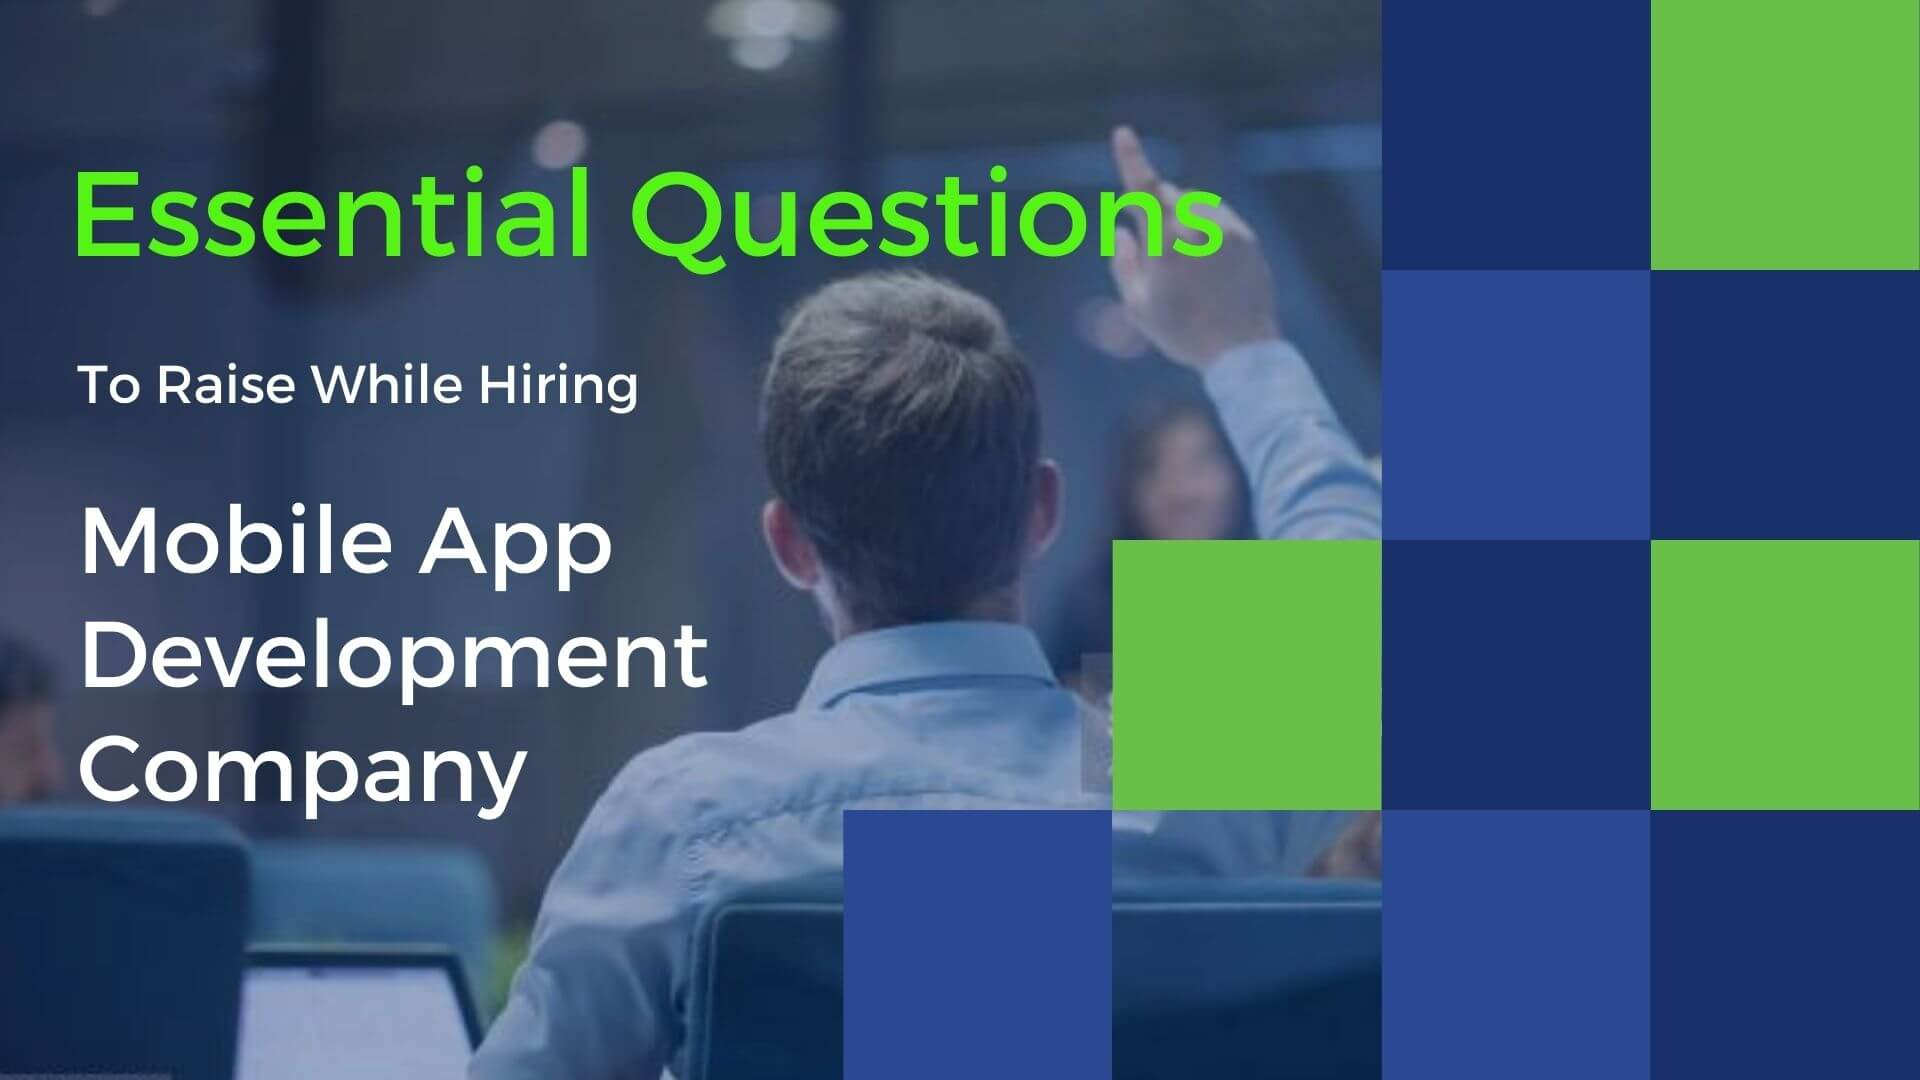 Top 10 Important Questions To Ask a Mobile App Development Company Before Hiring